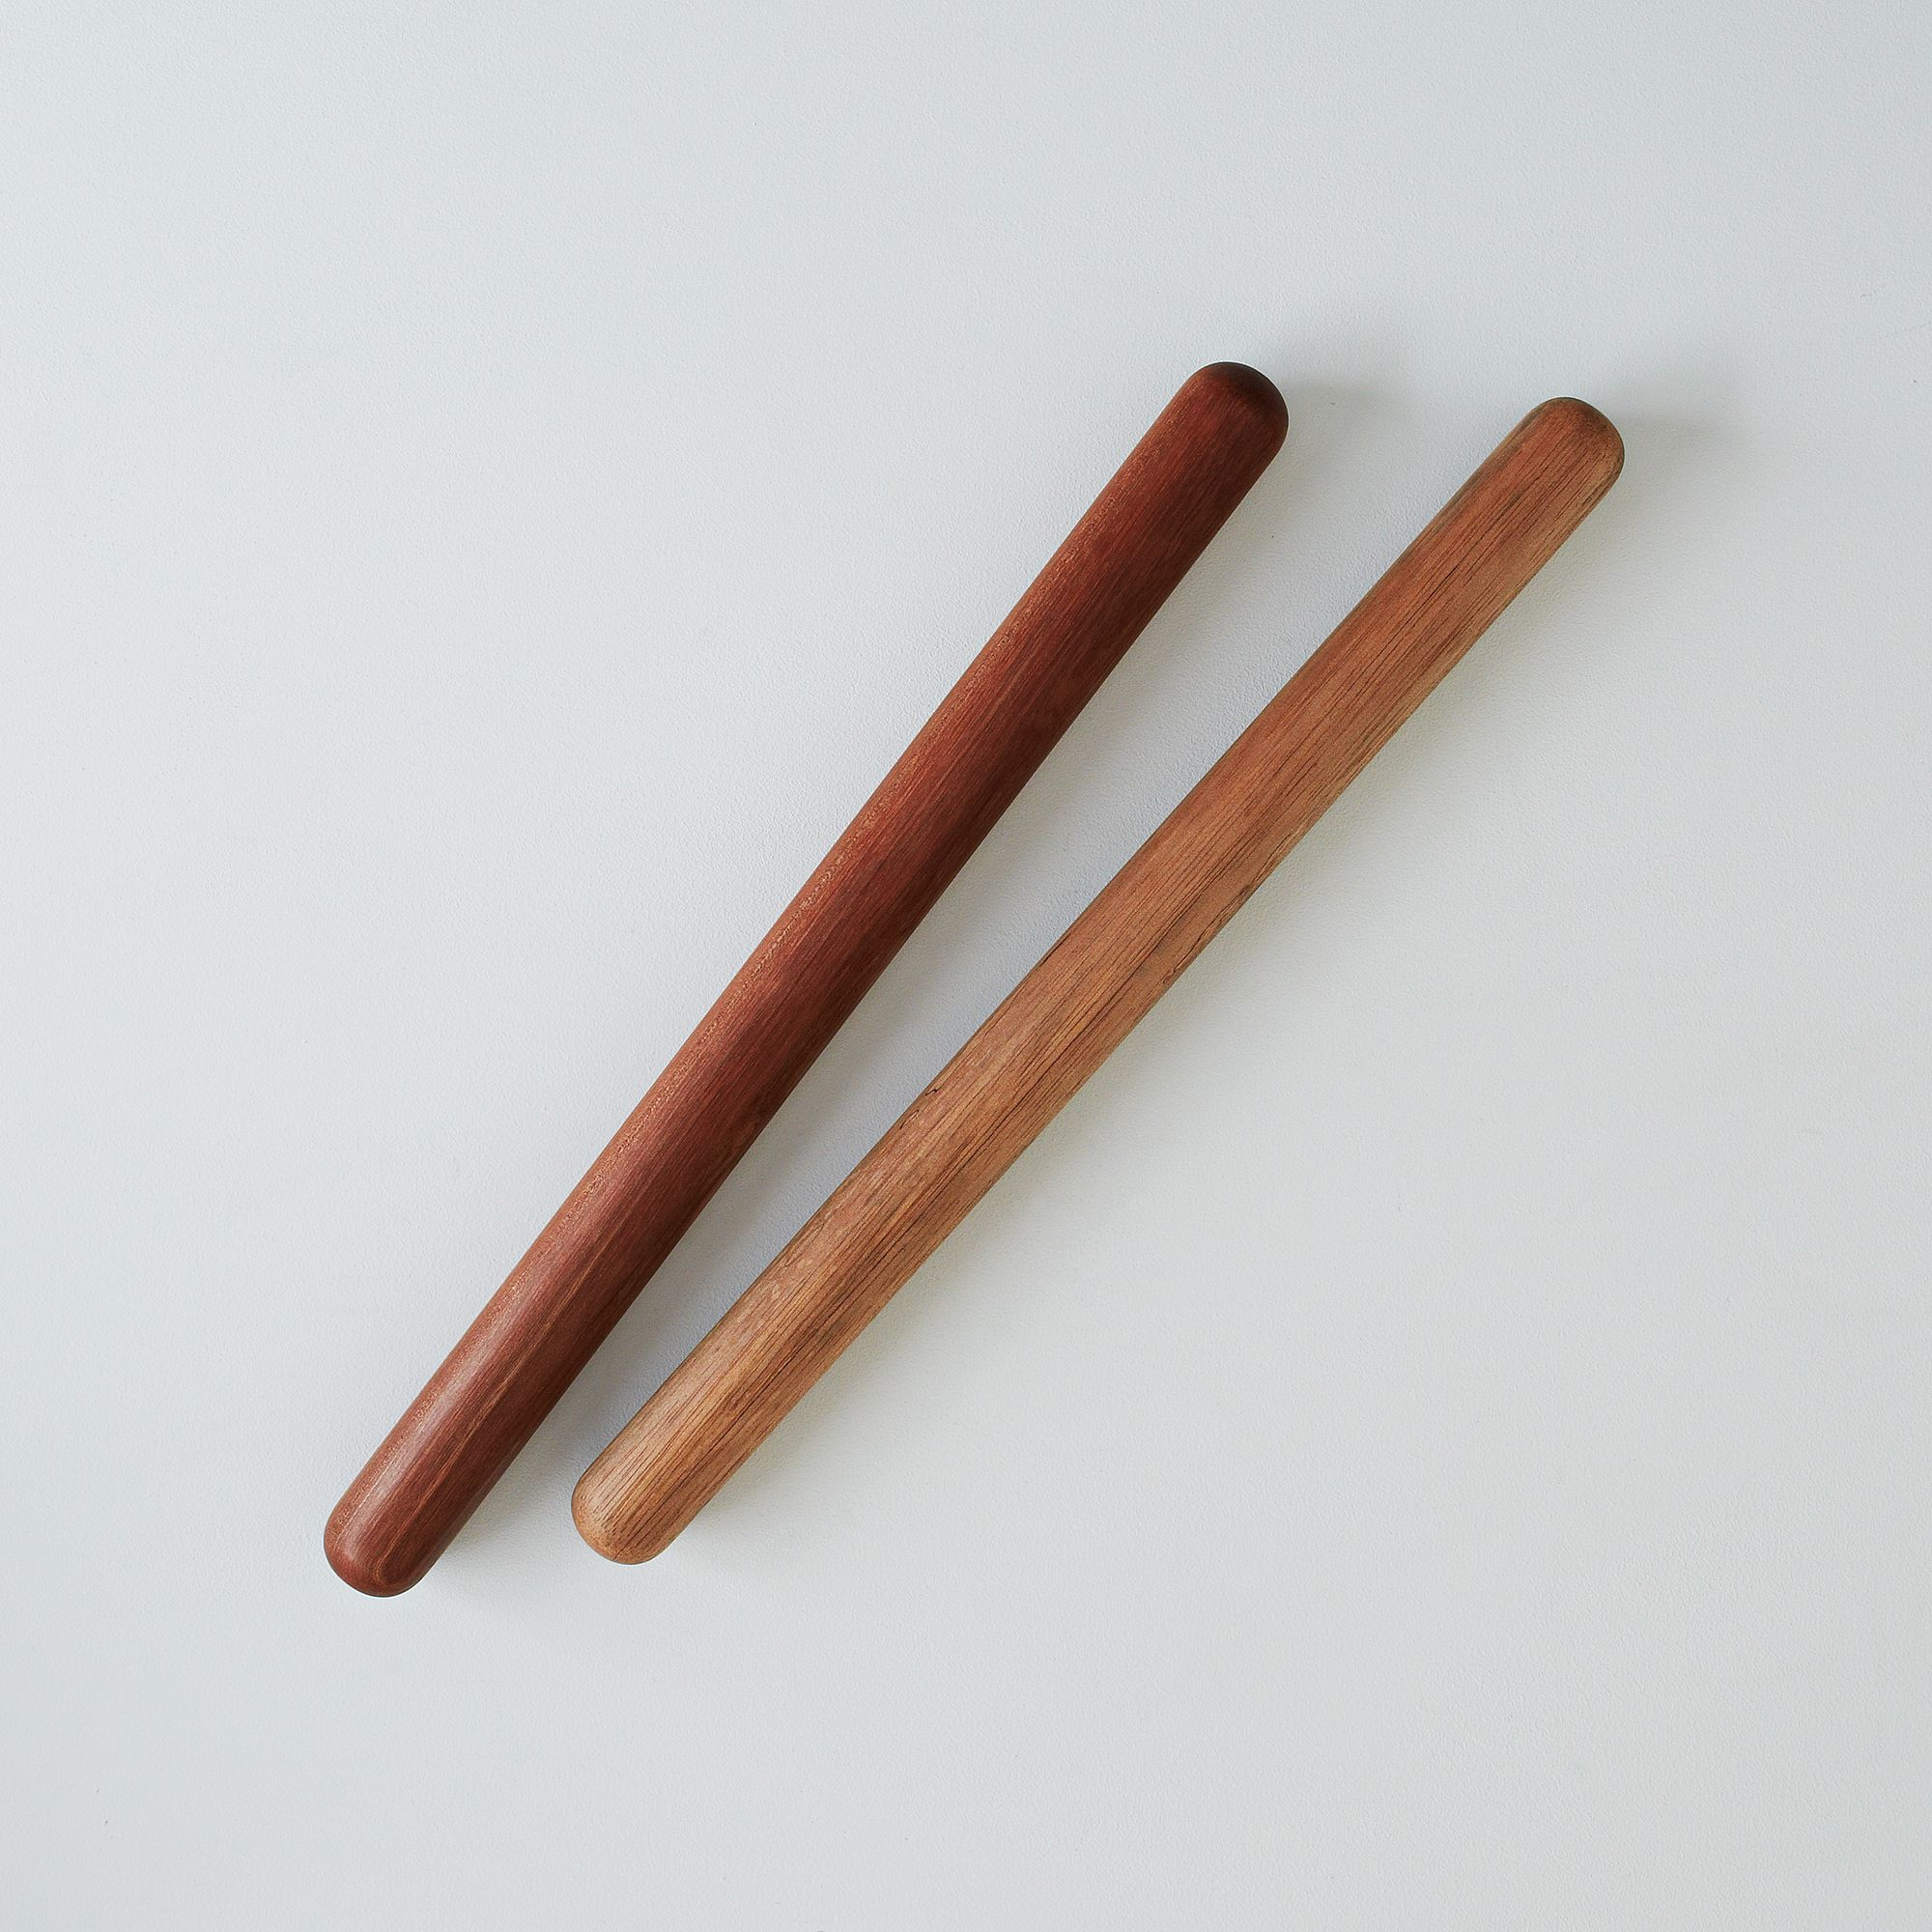 Cfb128f4 a0f7 11e5 a190 0ef7535729df  2015 0211 garde shop wooden rolling pins straight alpha smoot 247